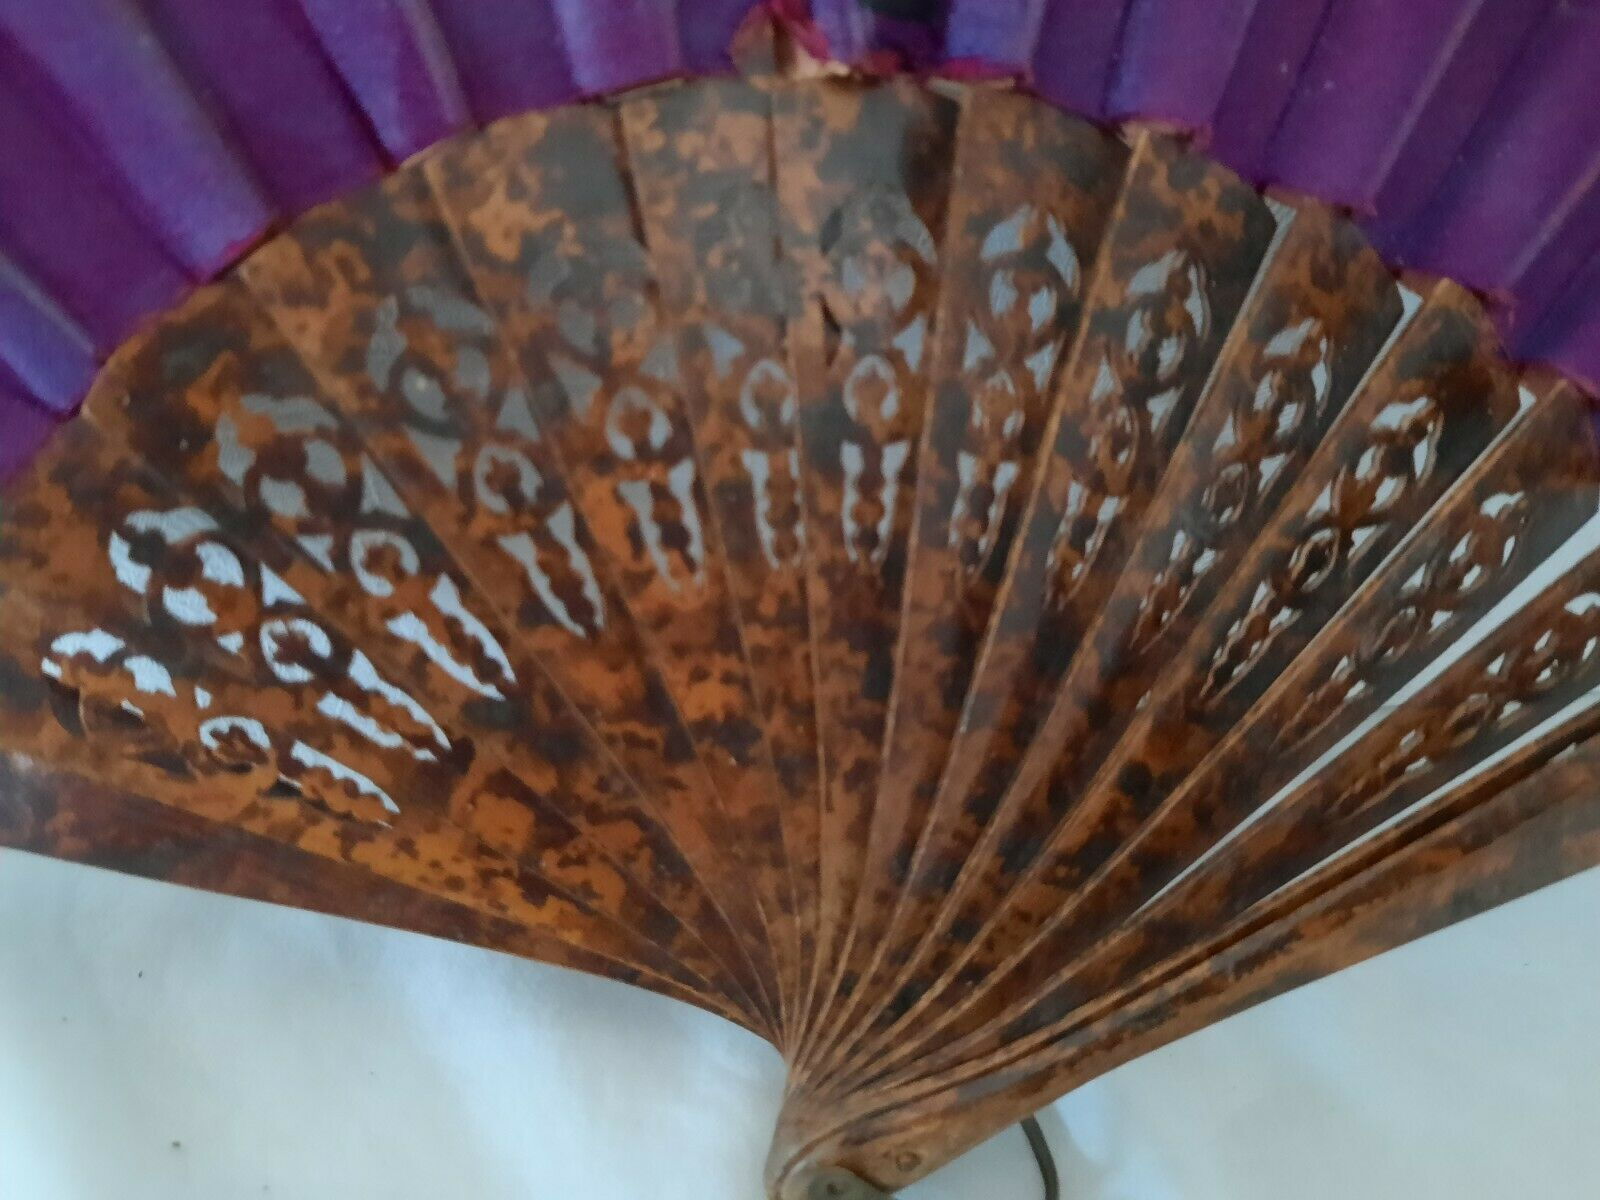 . Antique Victorian Lady's Hand painted fan